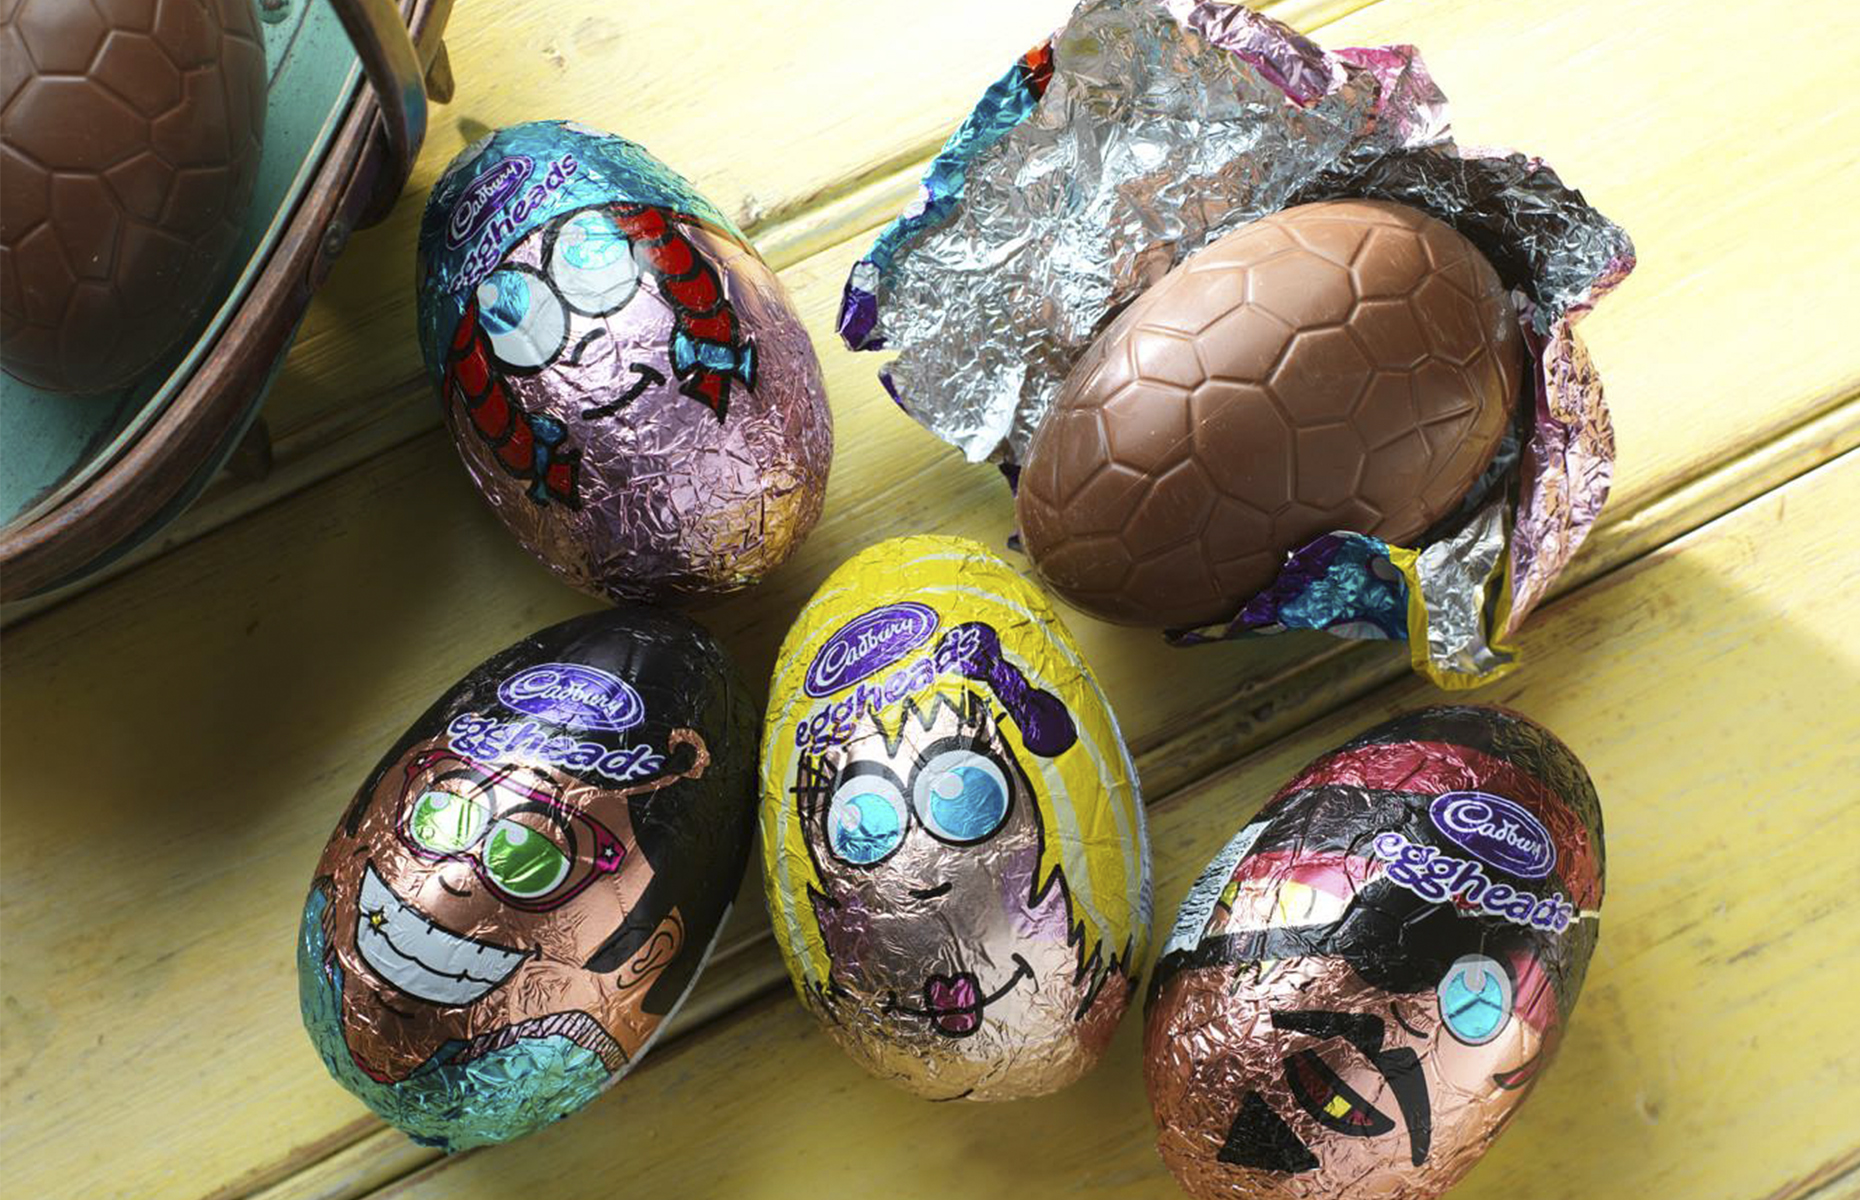 Cadbury chocolate eggs for kids (Image: CadburyUK/Facebook)